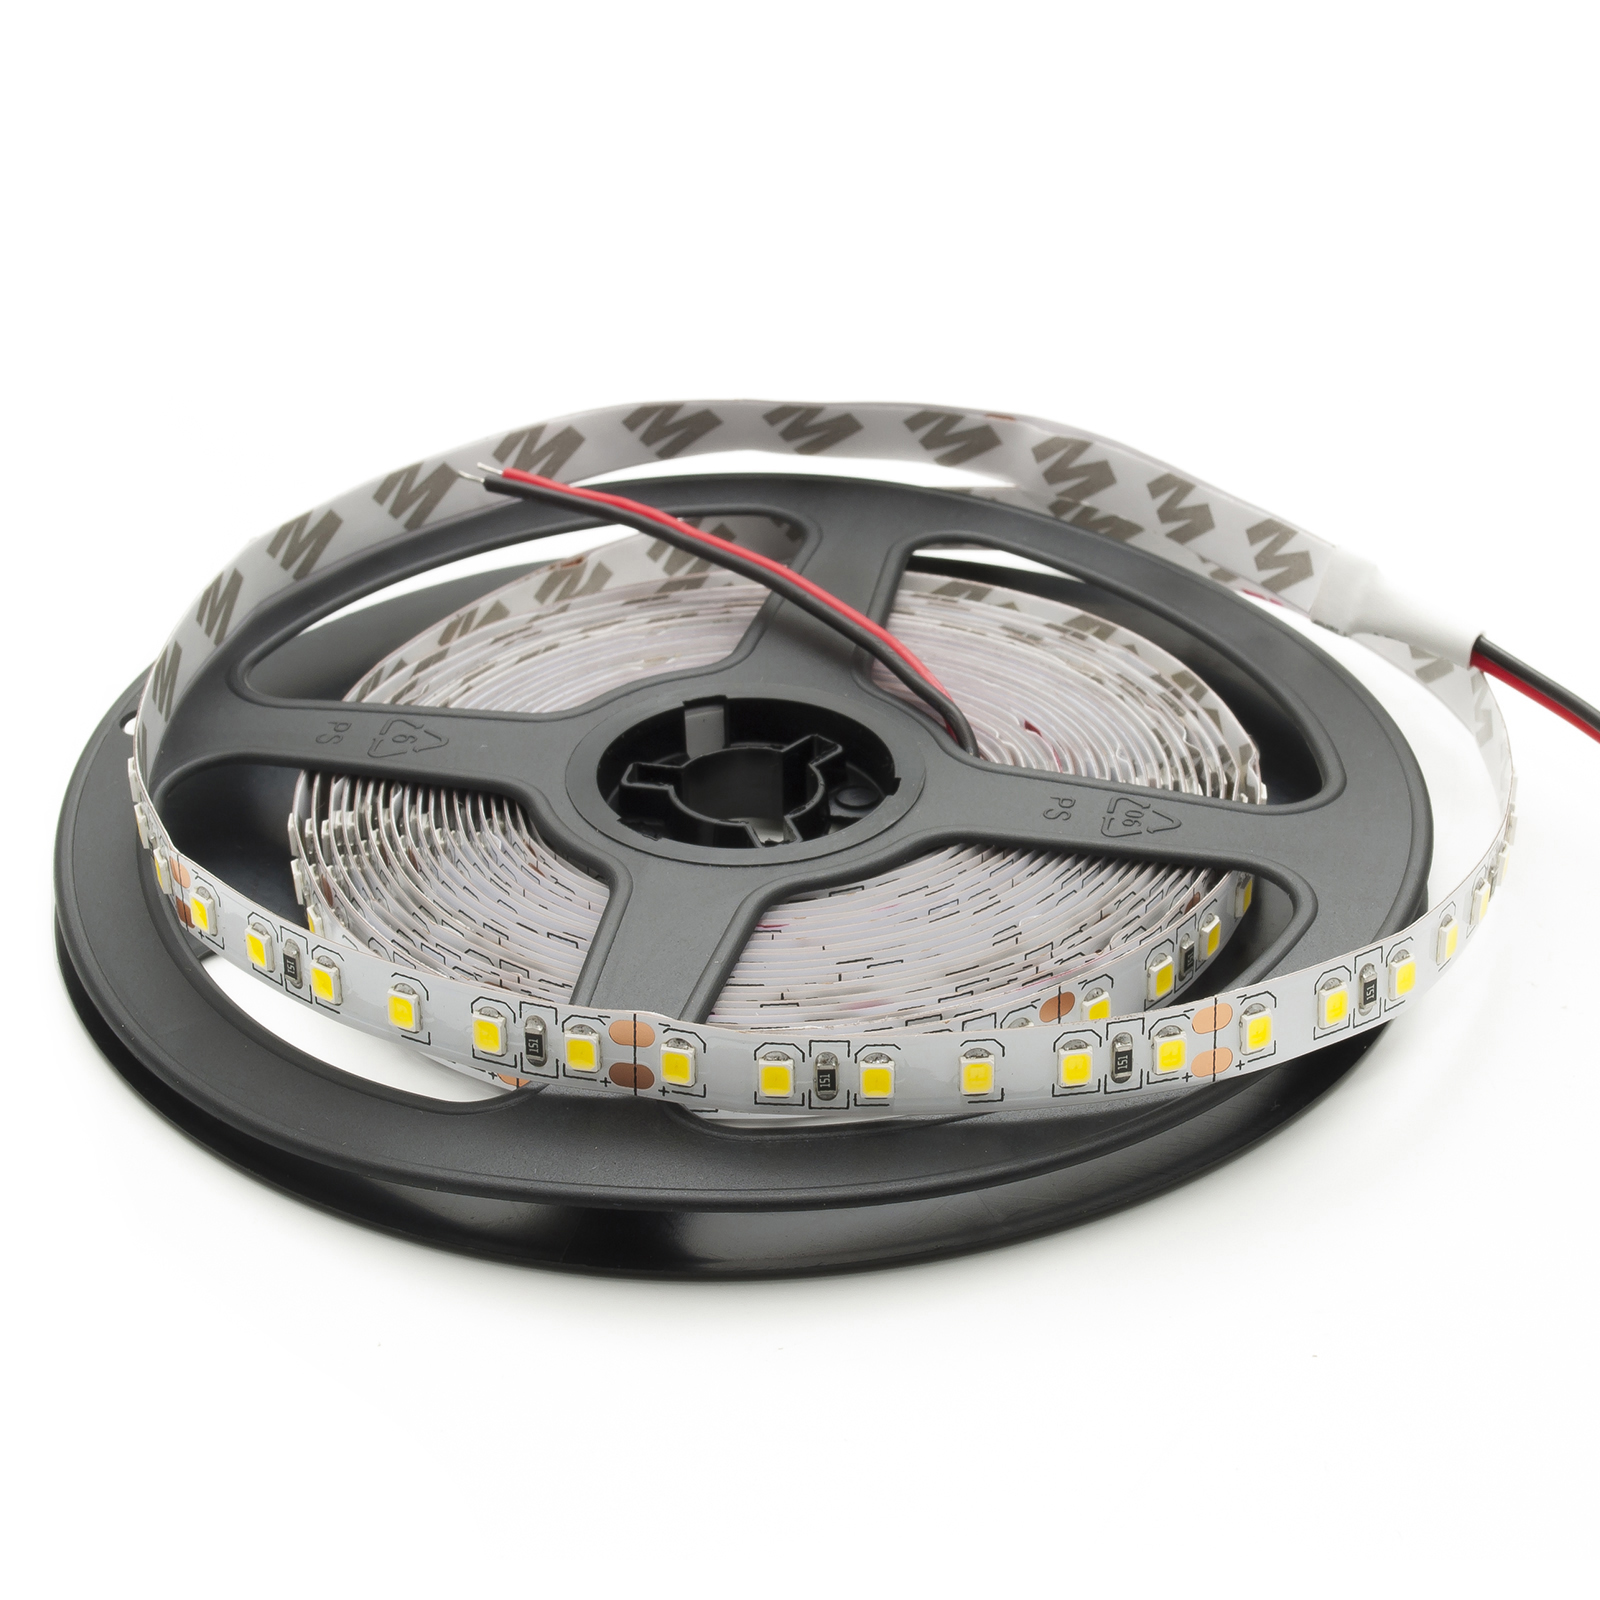 Striscia led 5 metri 12v strip 600 led SMD 2835 IP20 flessibile alta luminosita